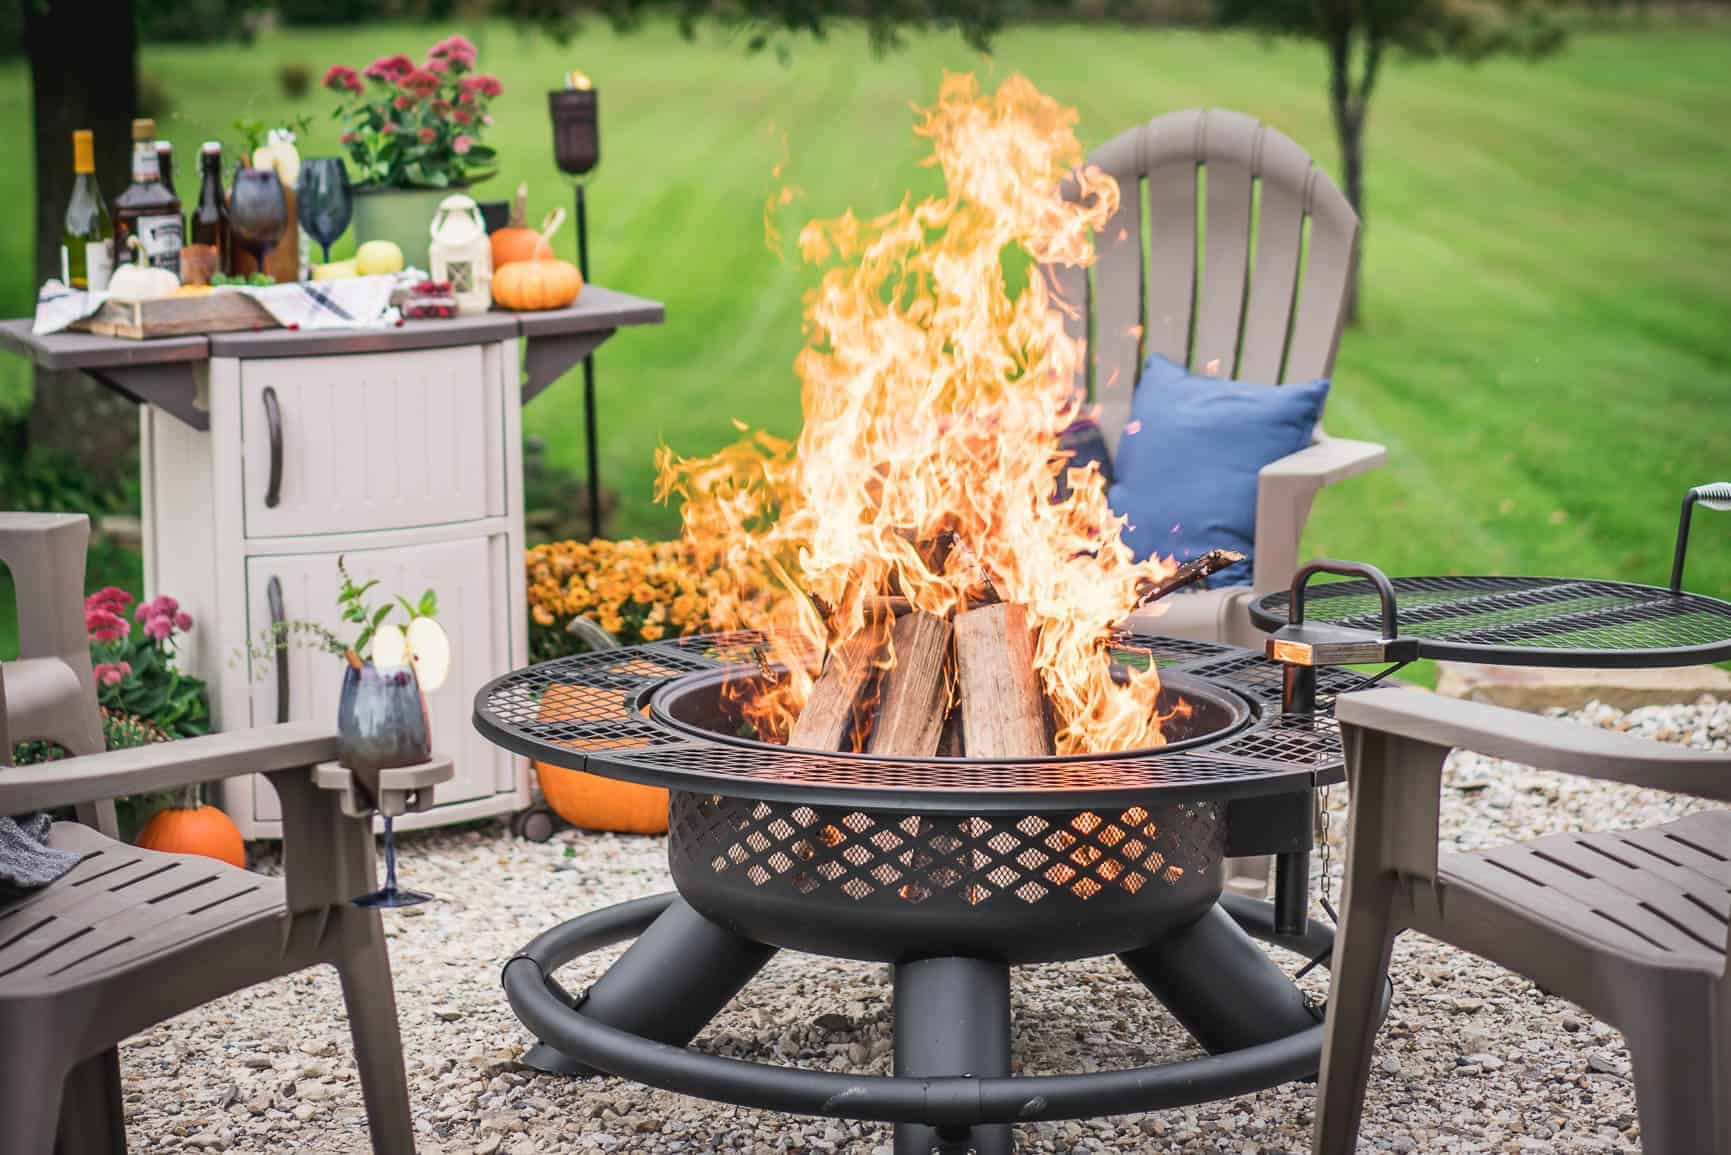 3 Essentials for Setting up the Ultimate Backyard Fire Pit